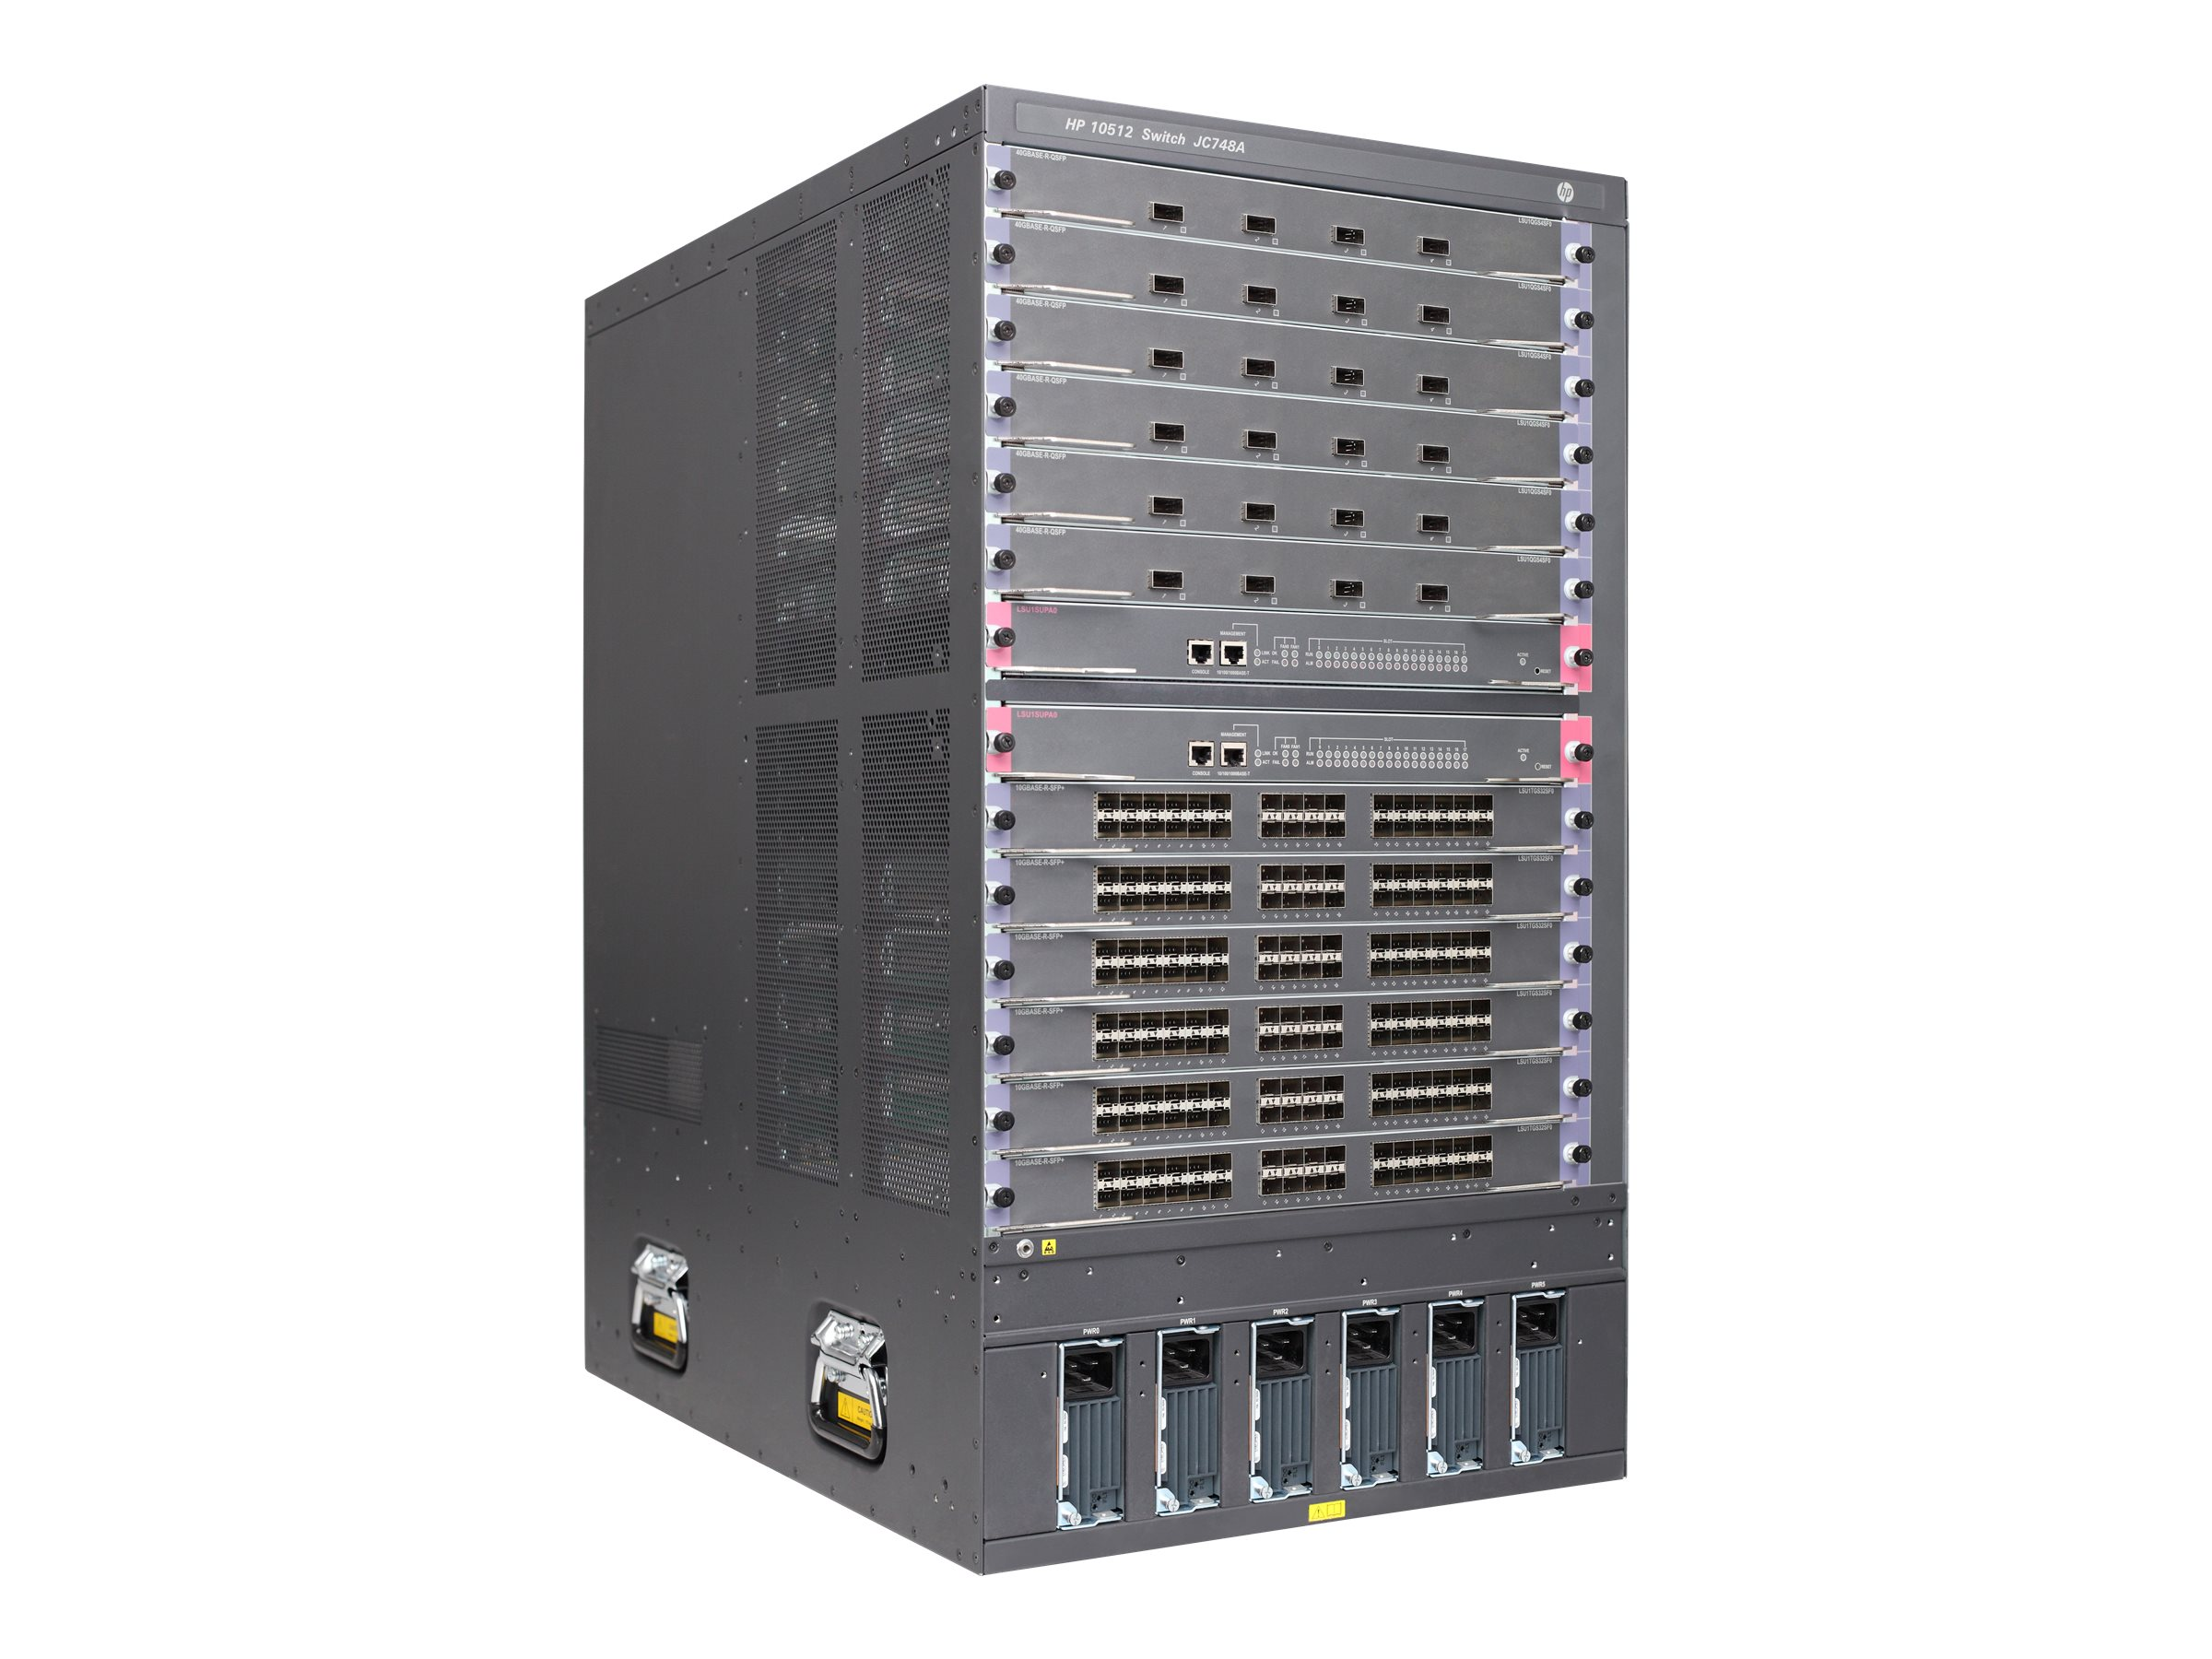 HP 10512 Switch Chassis (JC748A)